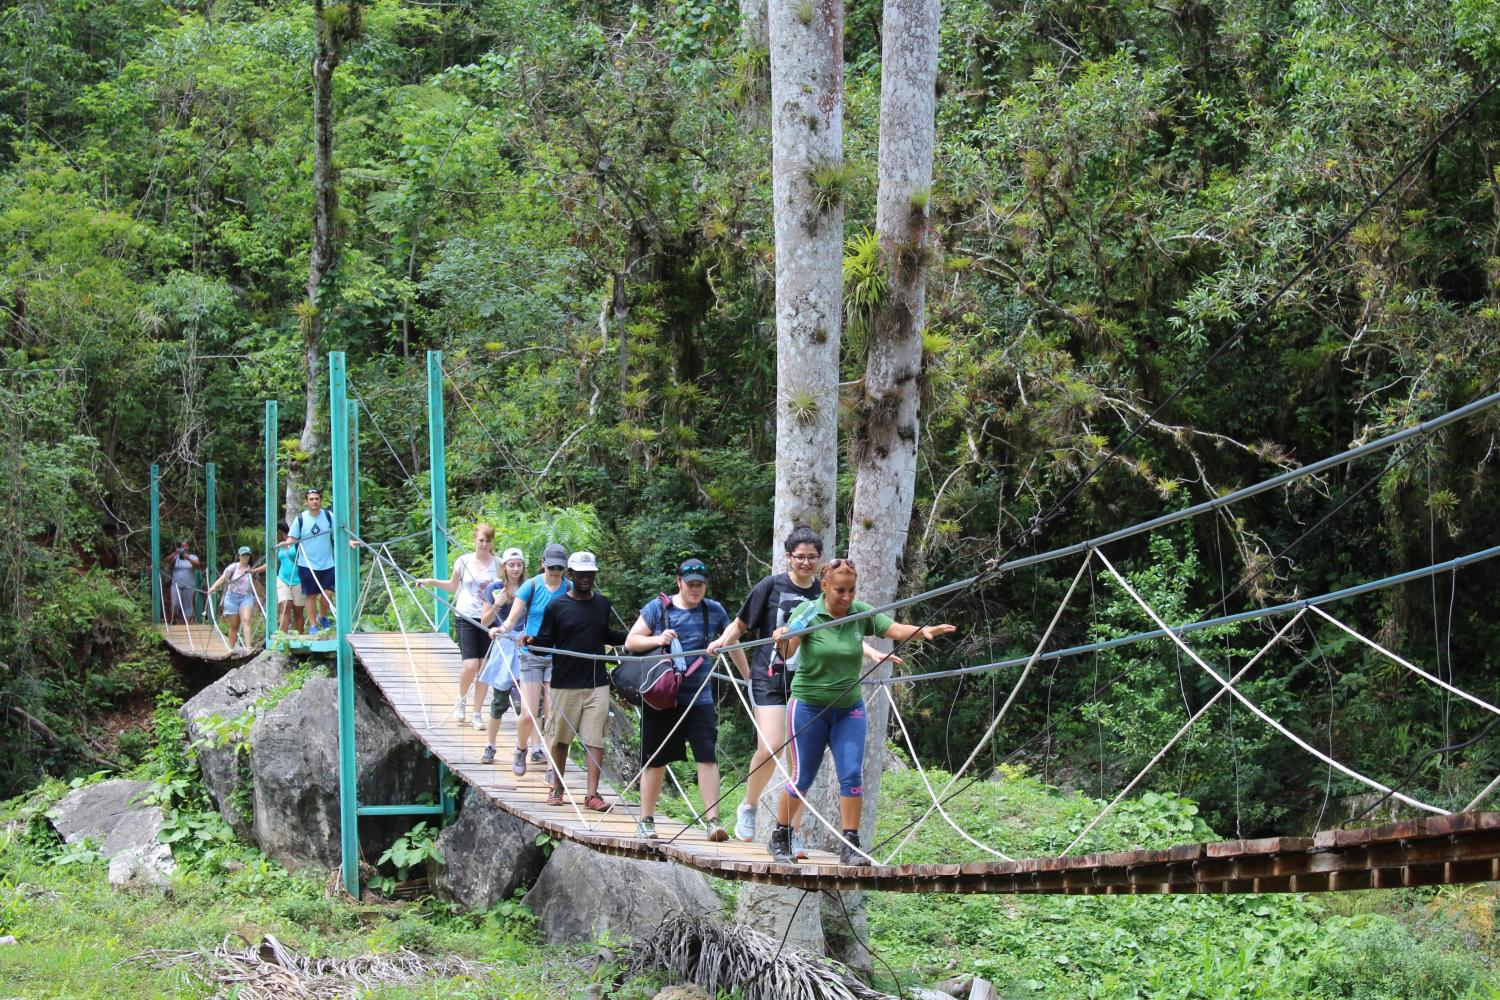 Students hike through Topes de Collantes National Park in the Escambray Mountains, Cuba.